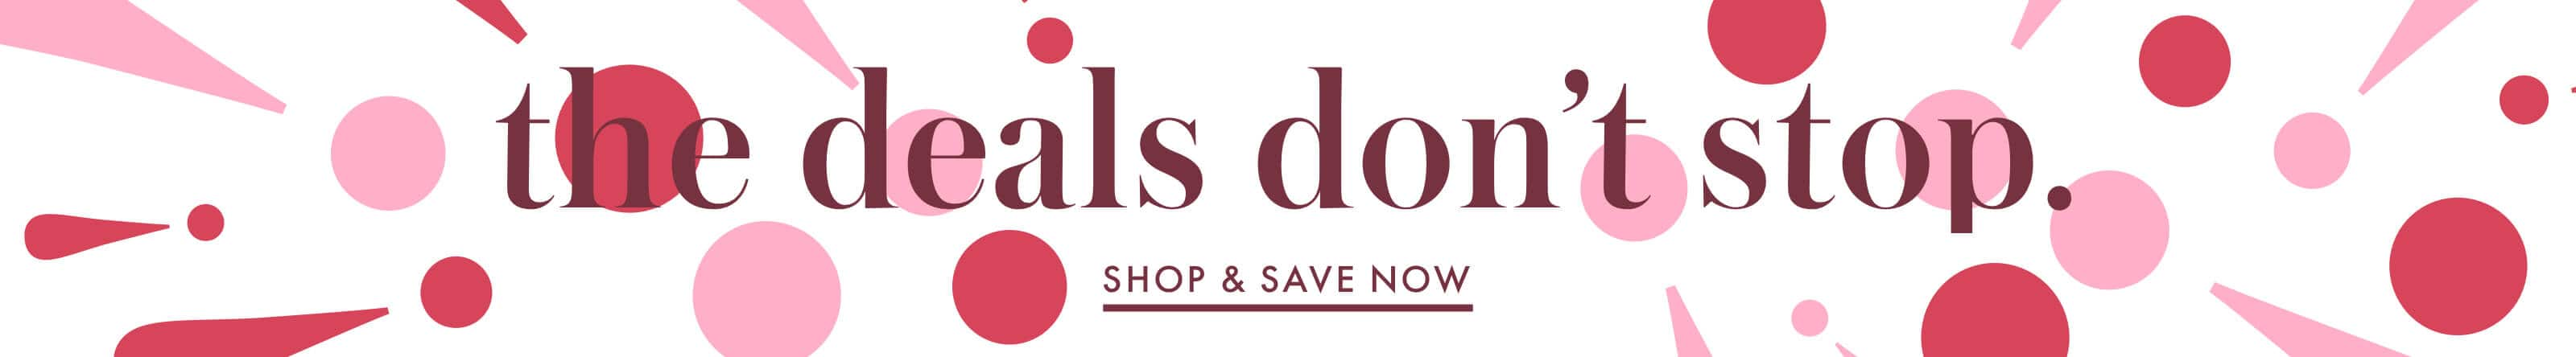 the deals don't stop. shop and save now.